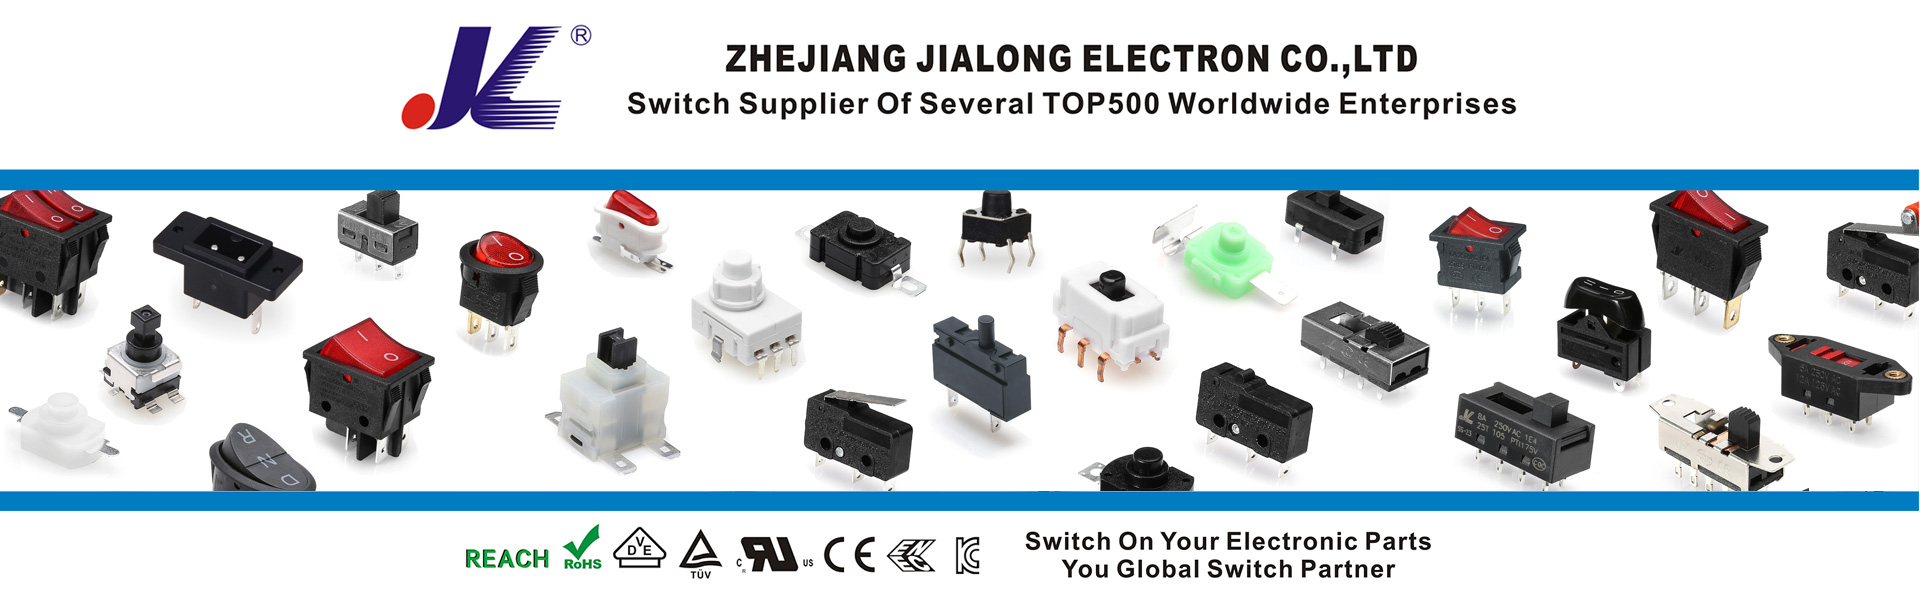 switch supplier of several Top500 worldwide enterprises